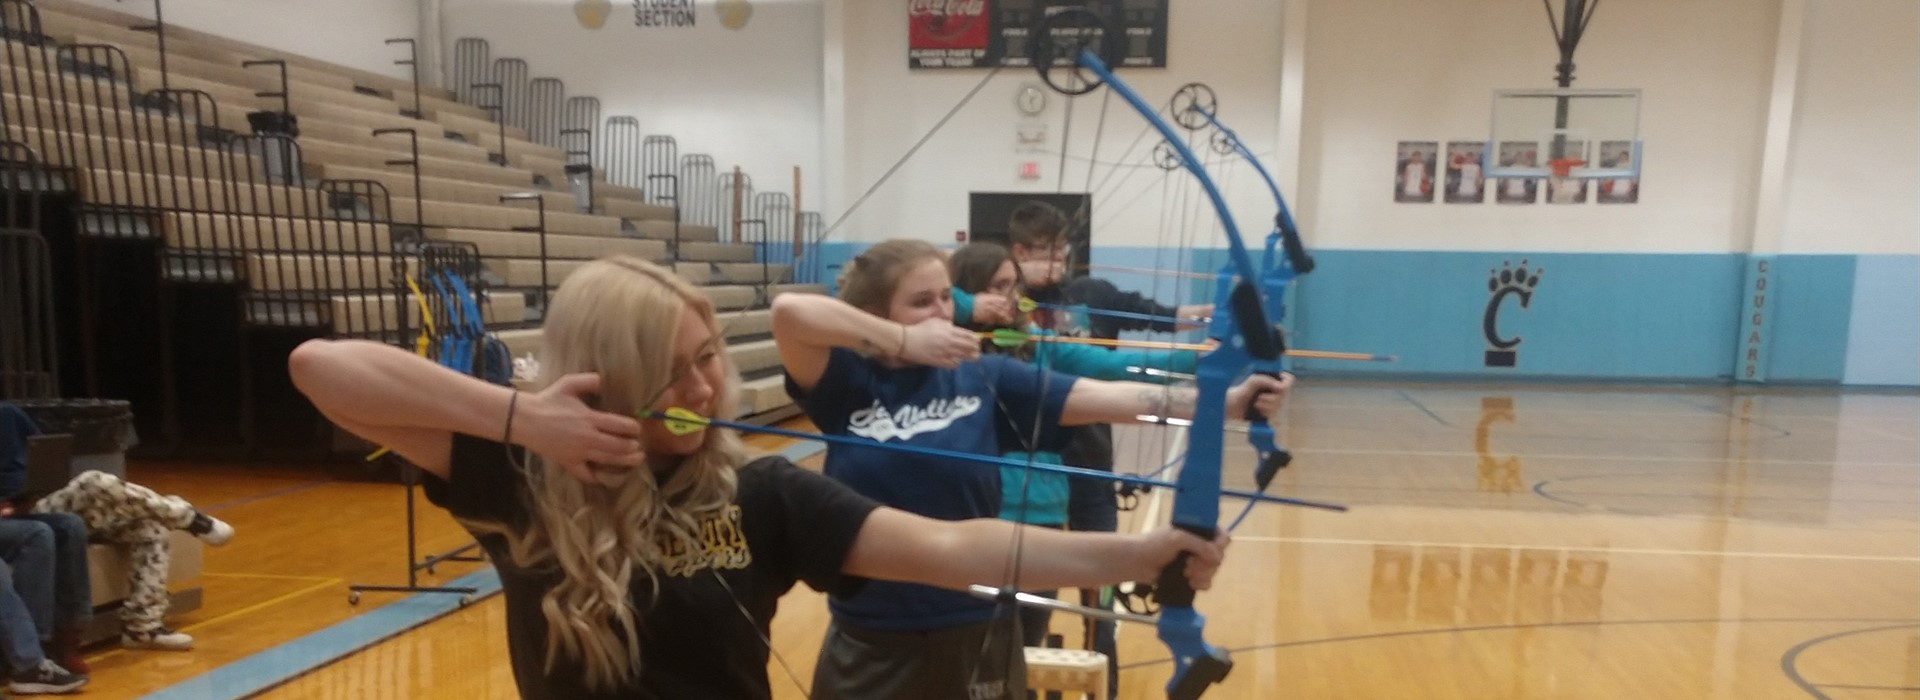 Students learning archery in Lifetime Sports